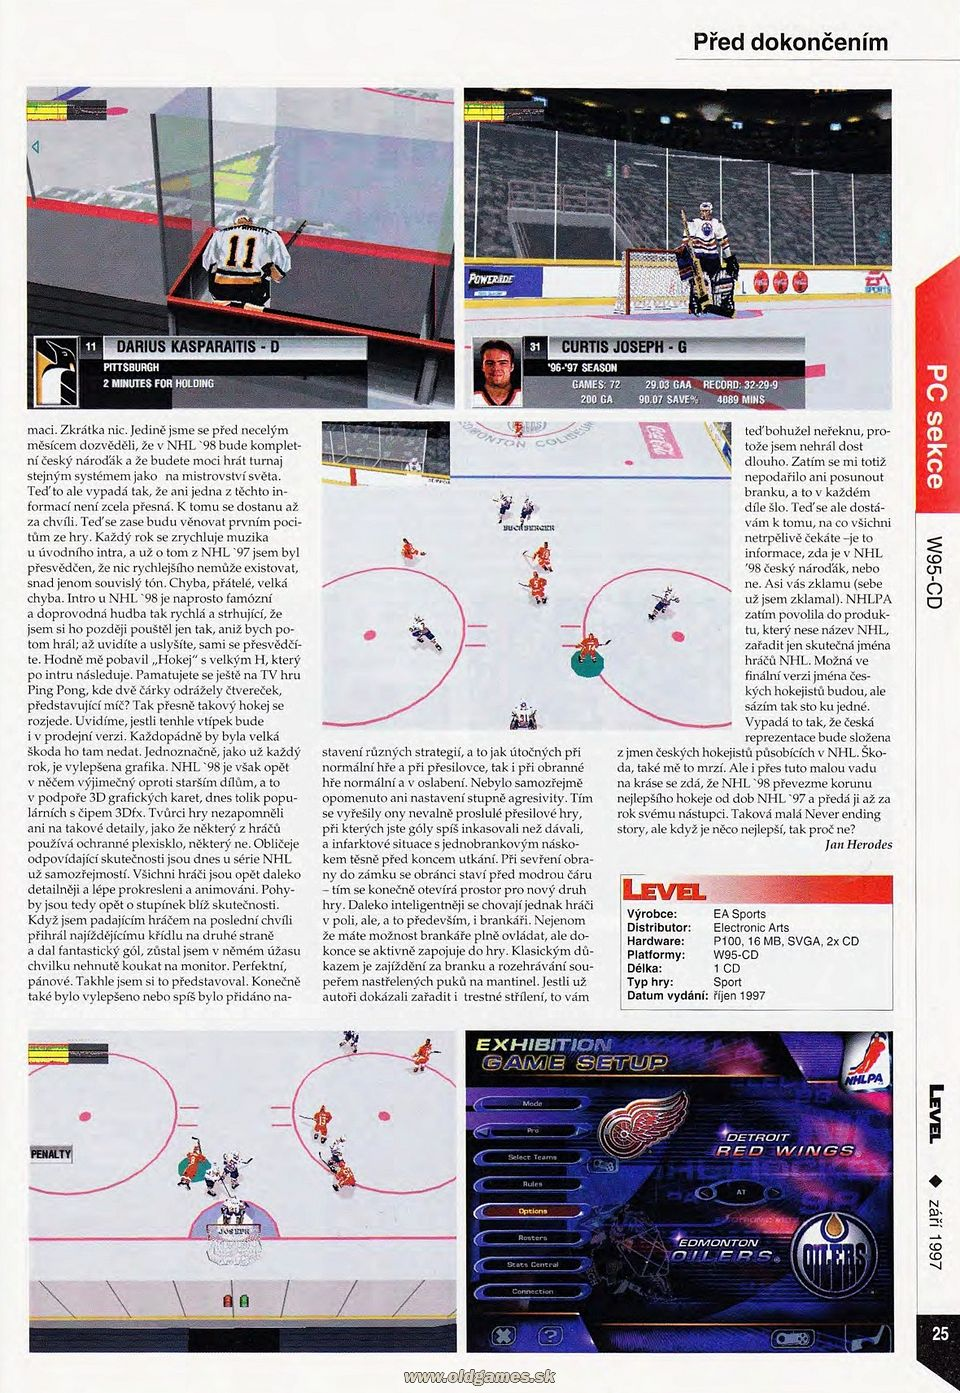 Preview: NHL 98